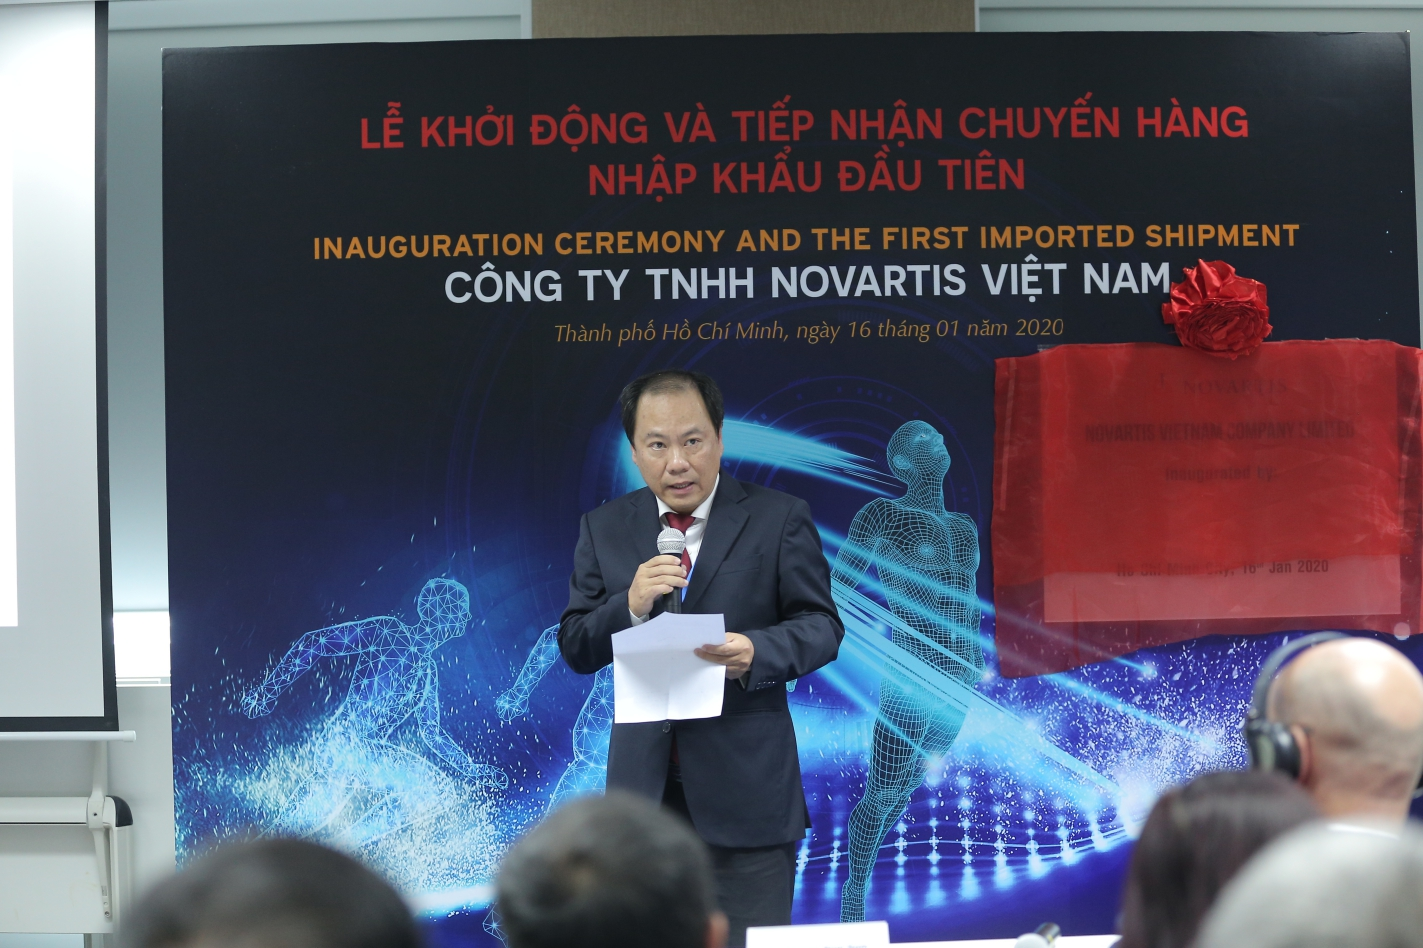 Dr. Nguyen Hoai Nam, deputy director of the Ho Chi Minh City Department of Health, speaks at the inauguration ceremony in Ho Chi Minh City on January 16, 2020.